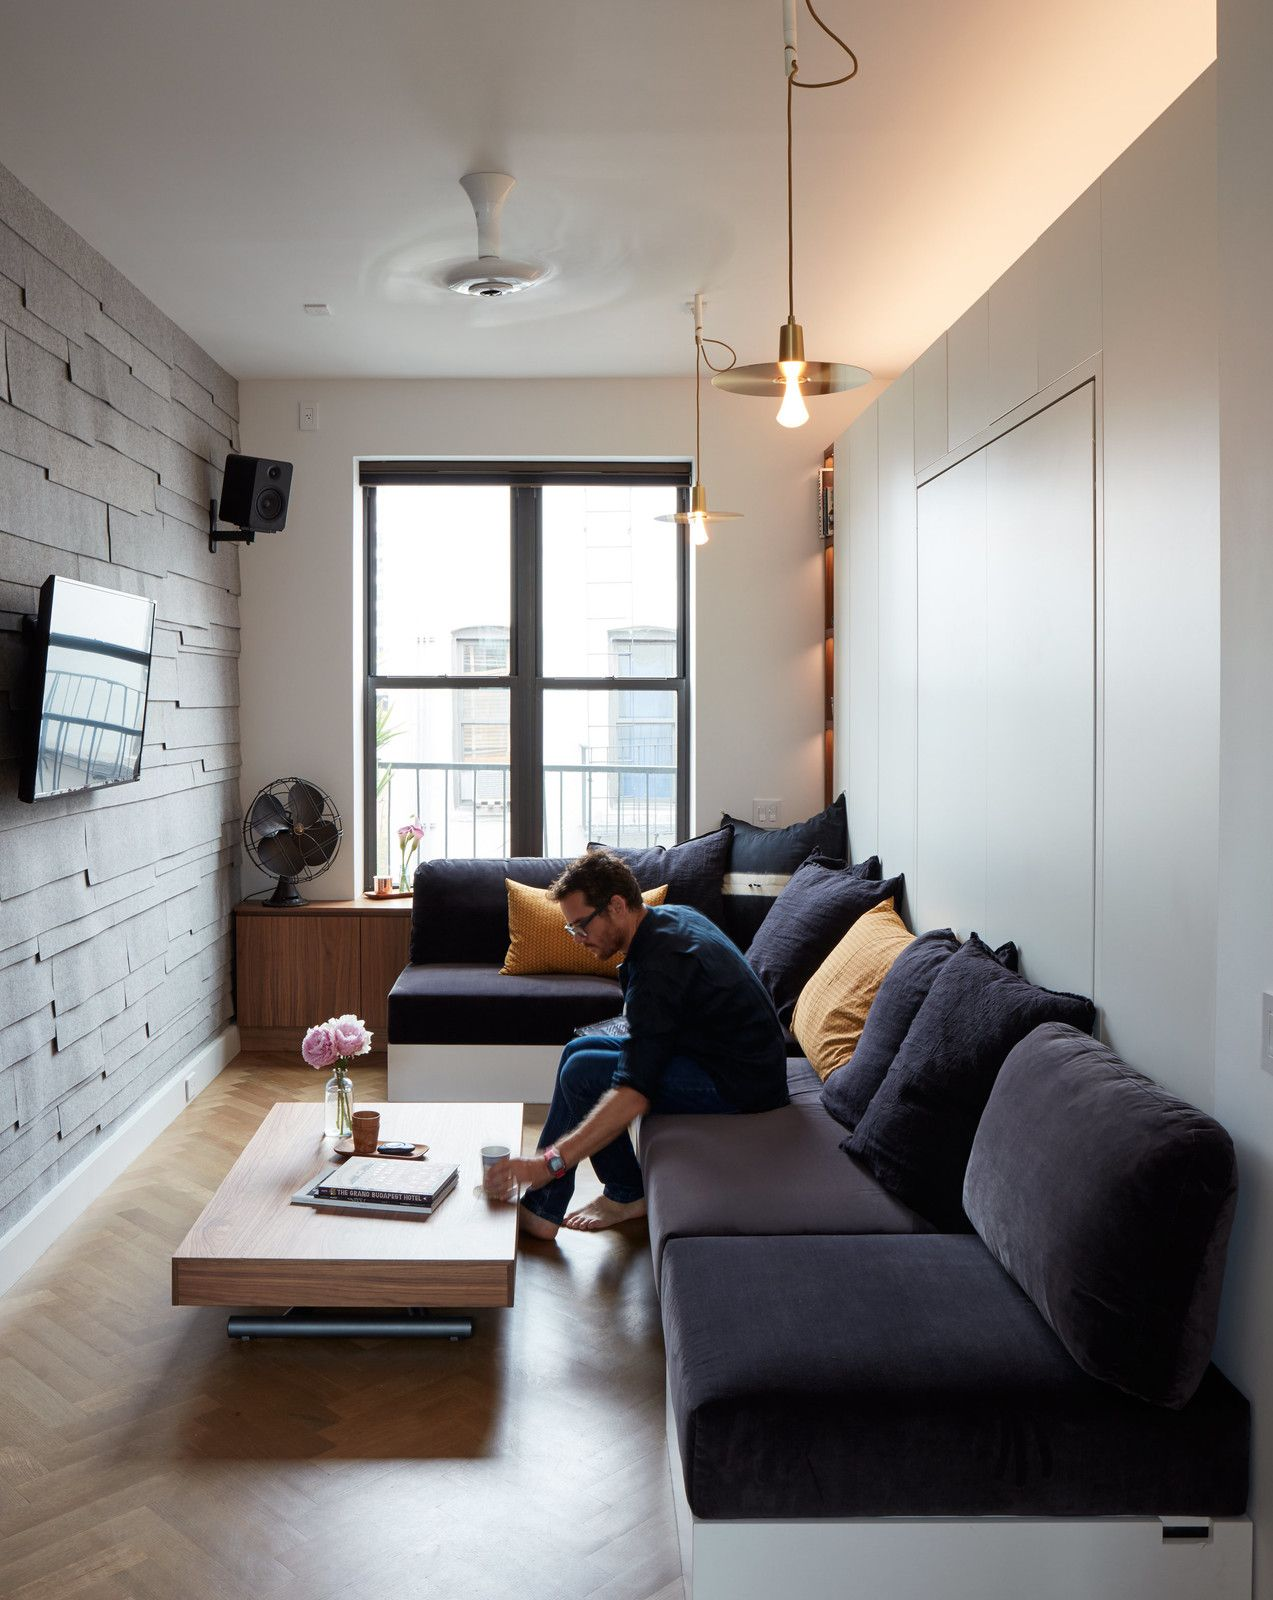 Small Space Living In A SoHo Apartment In 2019